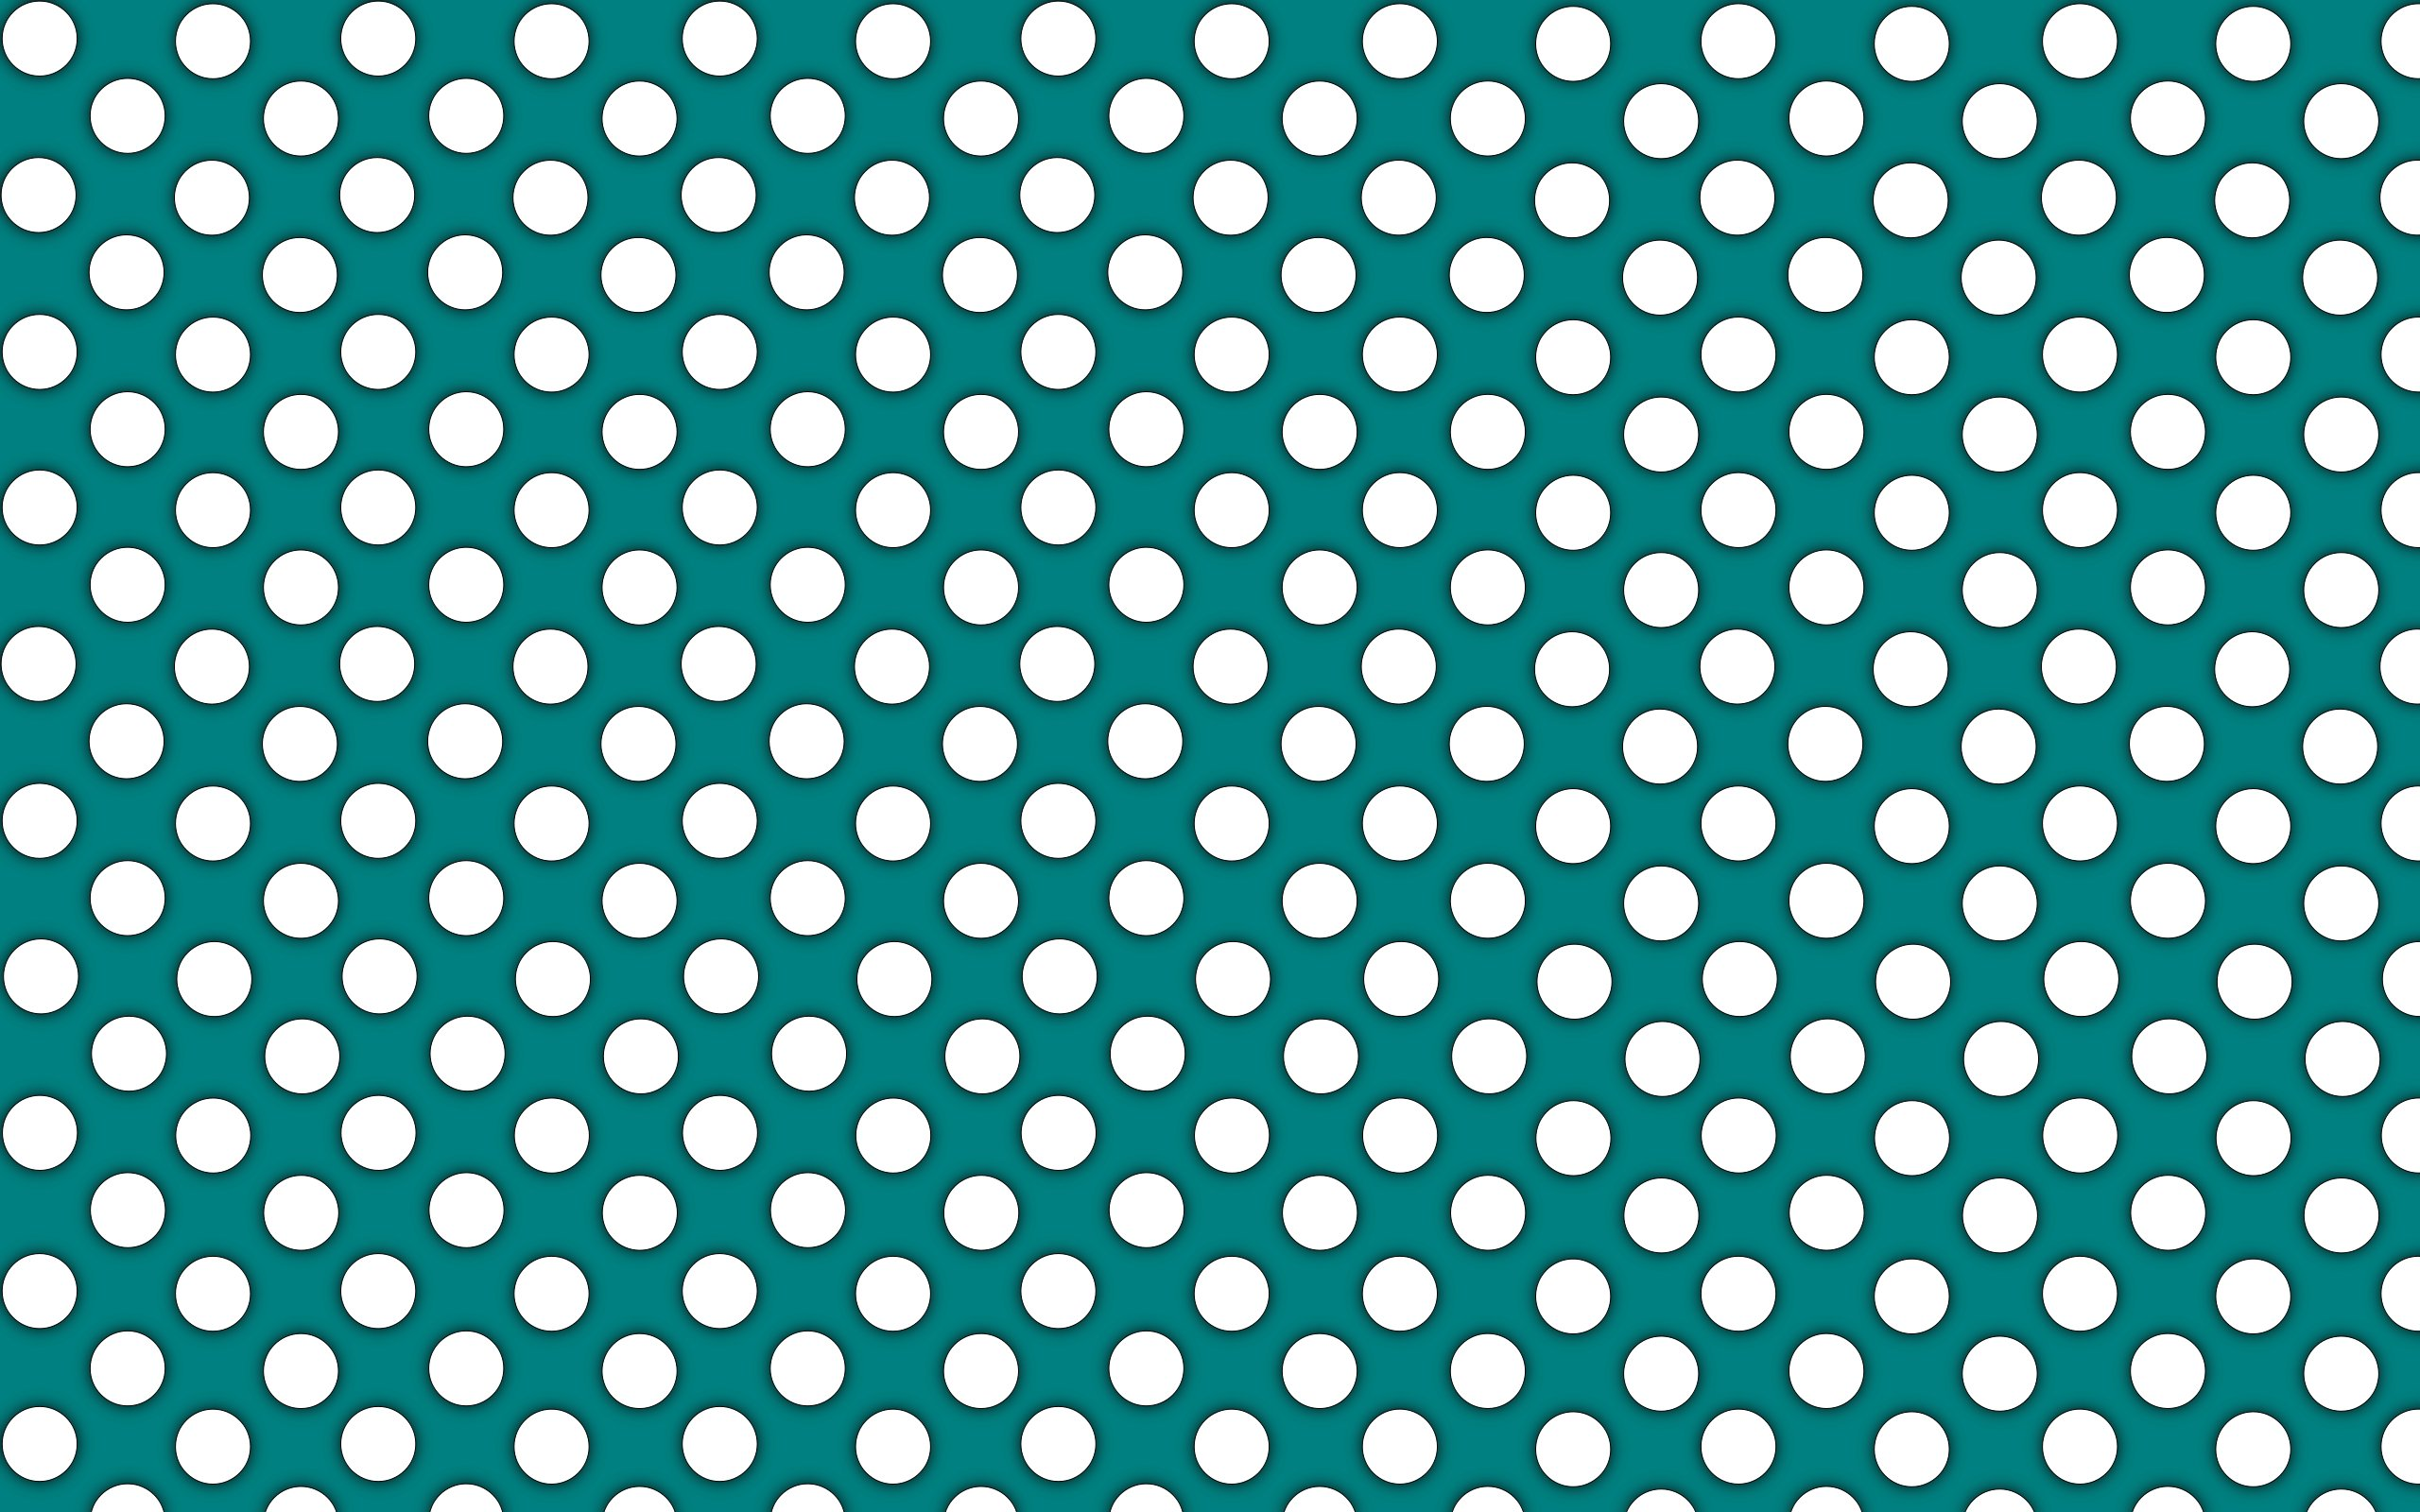 Black and White. Black and White Polka Dot Wallpaper: ...